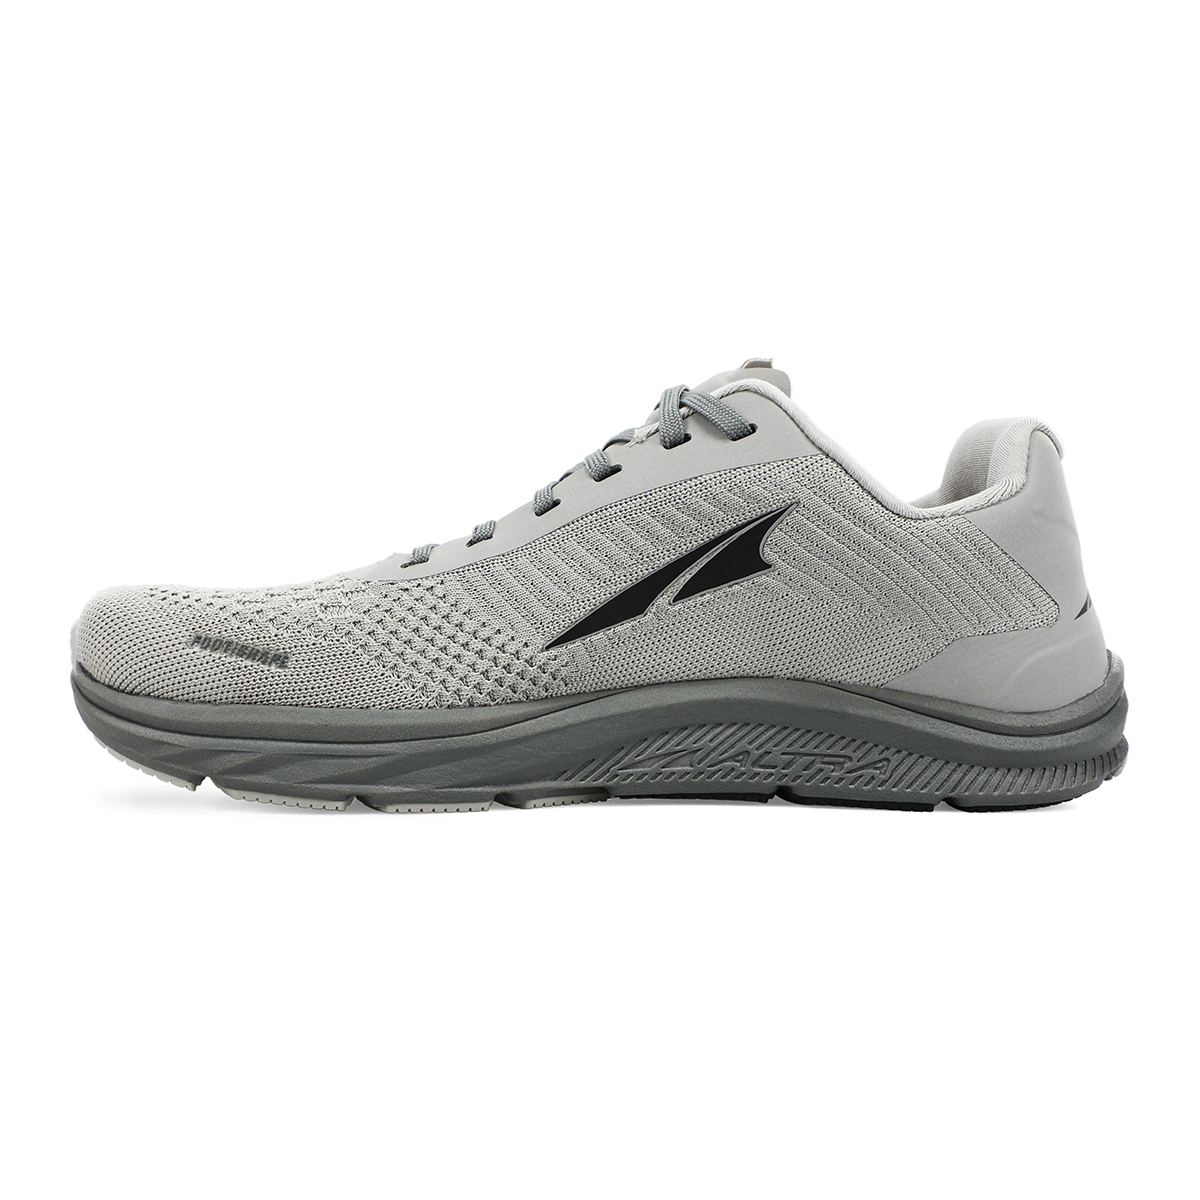 Men's Altra Torin 4.5 Plush Running Shoe - Color: Light Gray - Size: 11.5 - Width: Regular, Light Gray, large, image 4